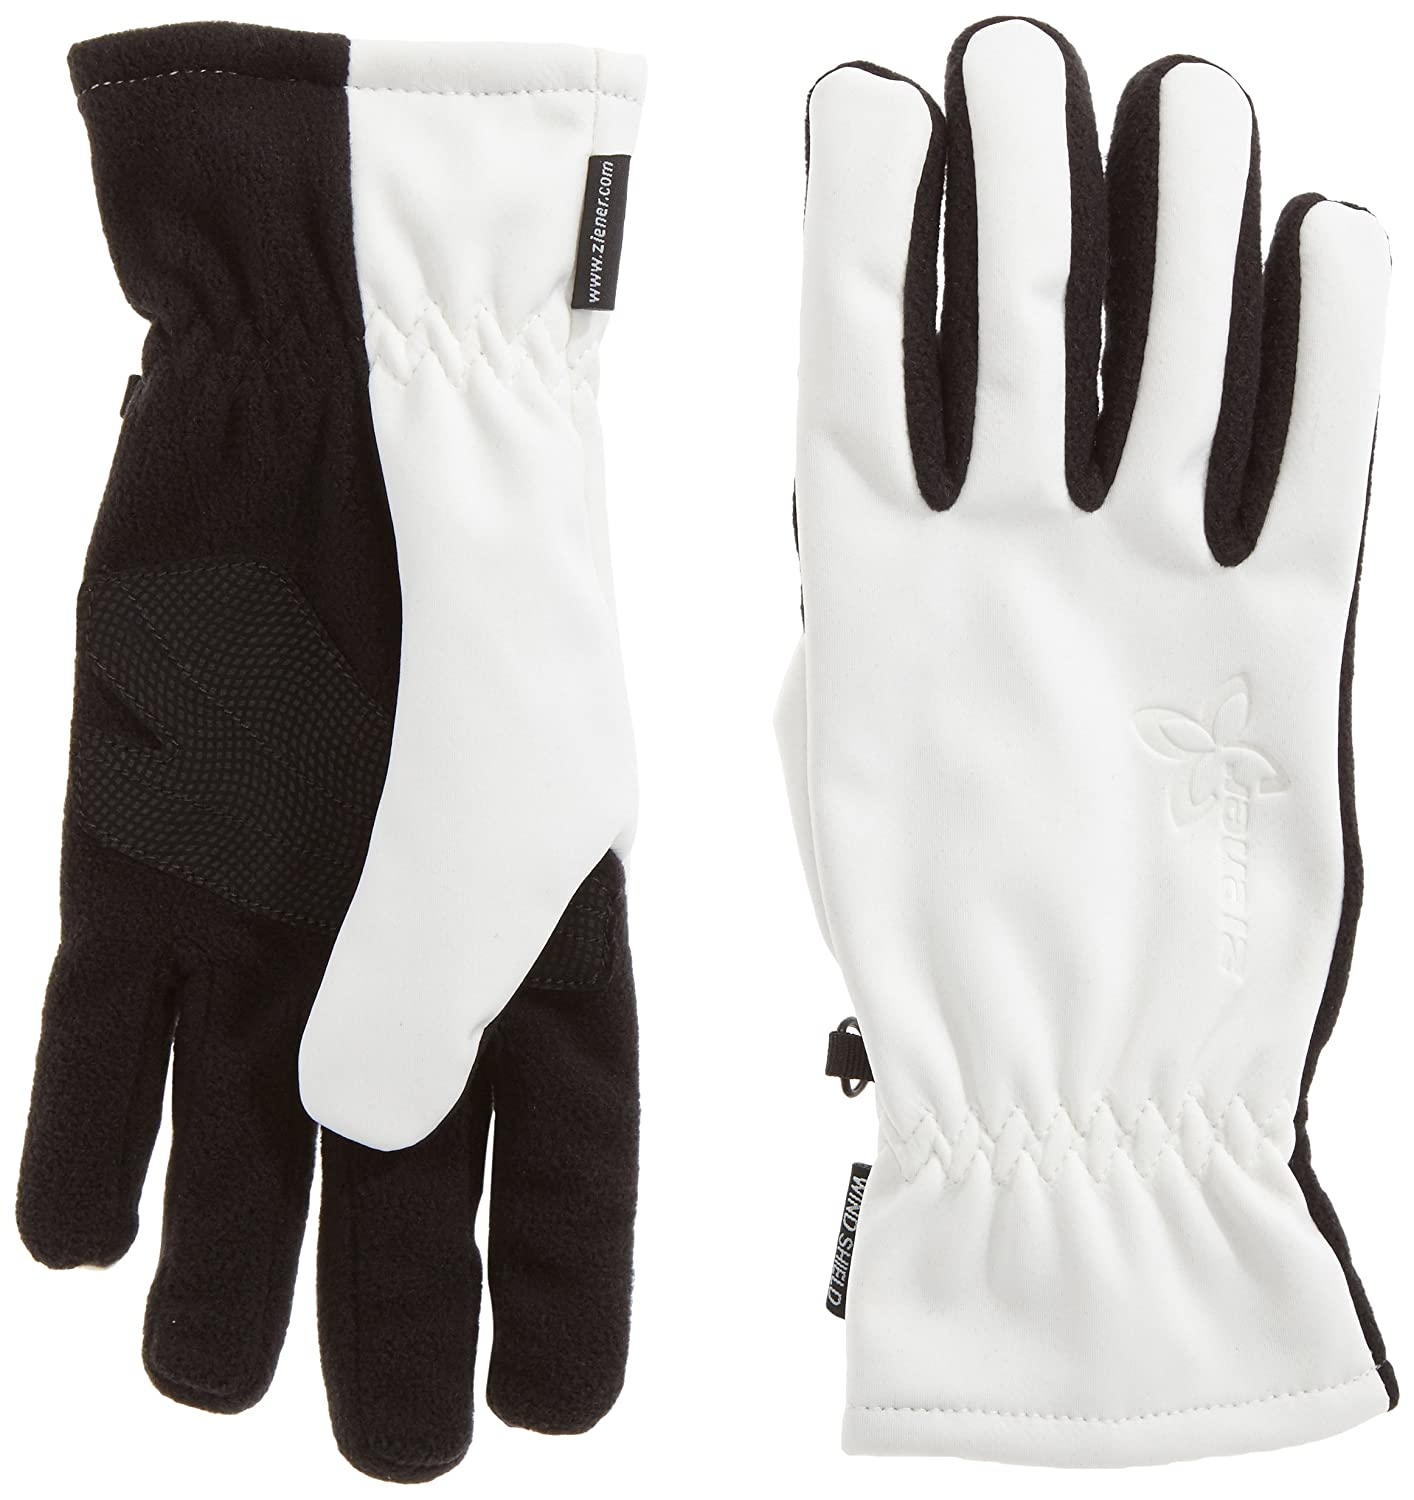 Importa Lady Gloves Multisport Gloves Handschuhe Importa Lady Gloves Multisport